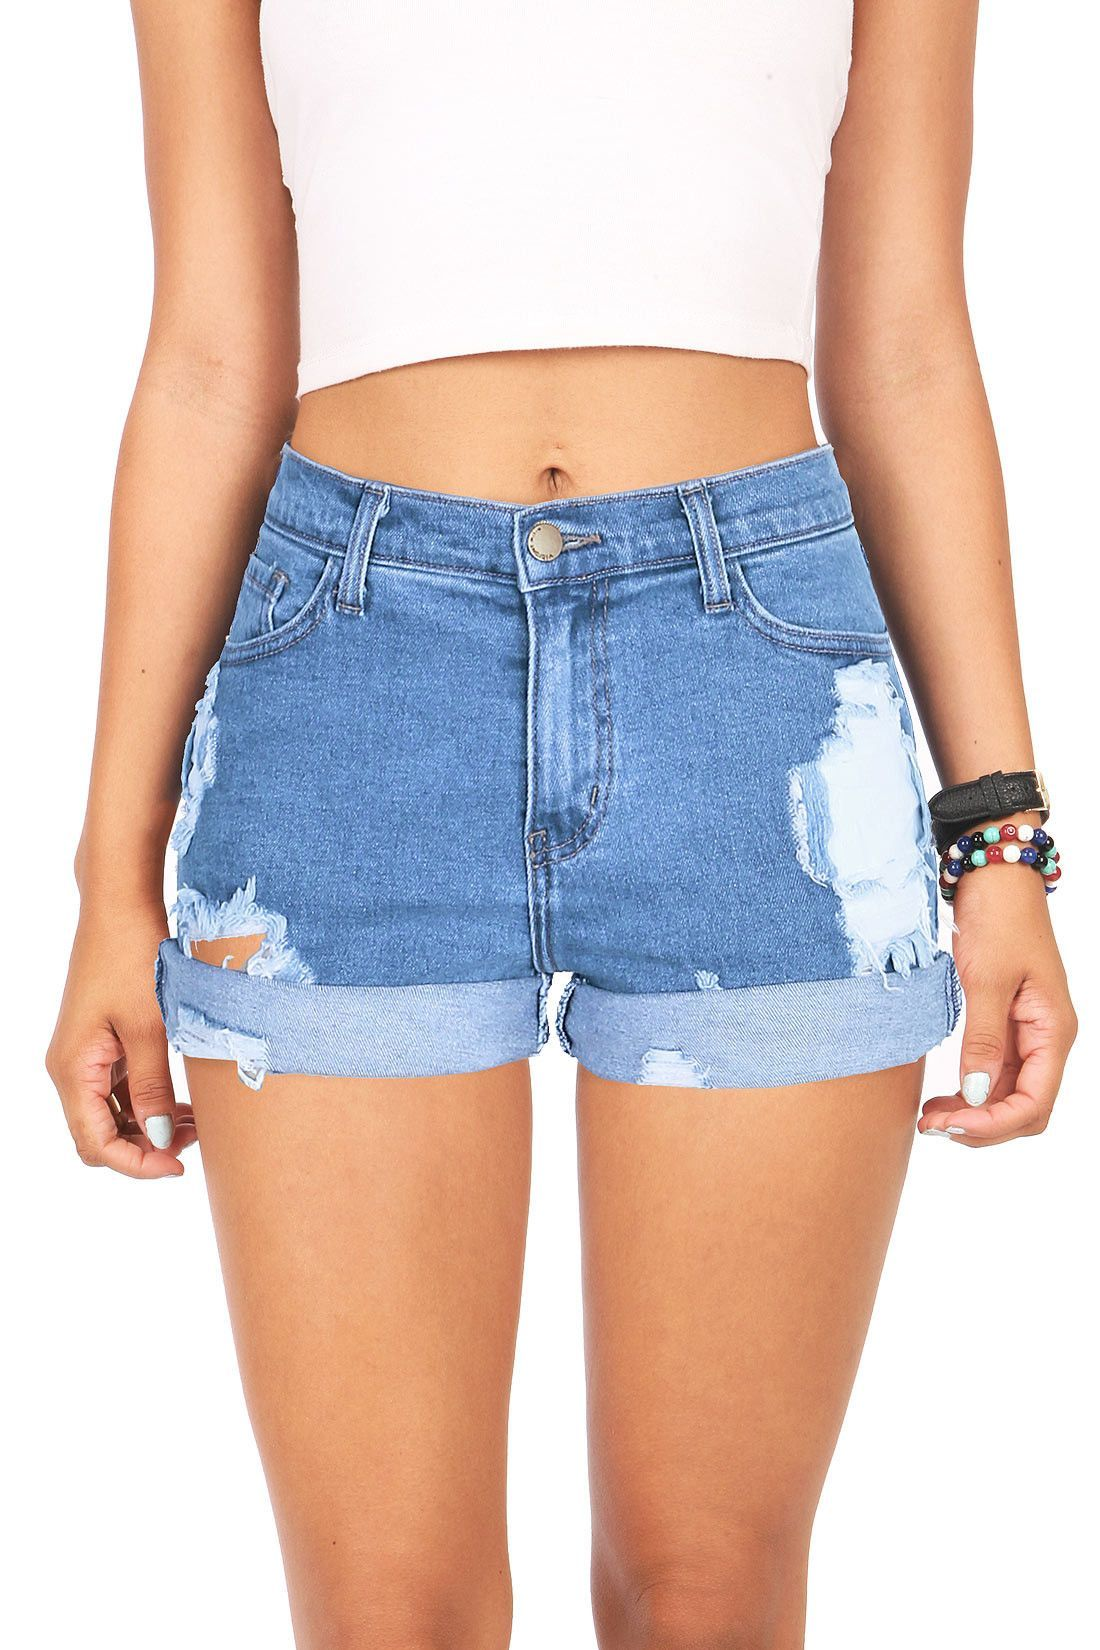 464ba28ccc1 High waist denim shorts with distressing down the front with a rolled up  hem. Classic denim wash and traditional 5-pocket construction with button  and zip ...